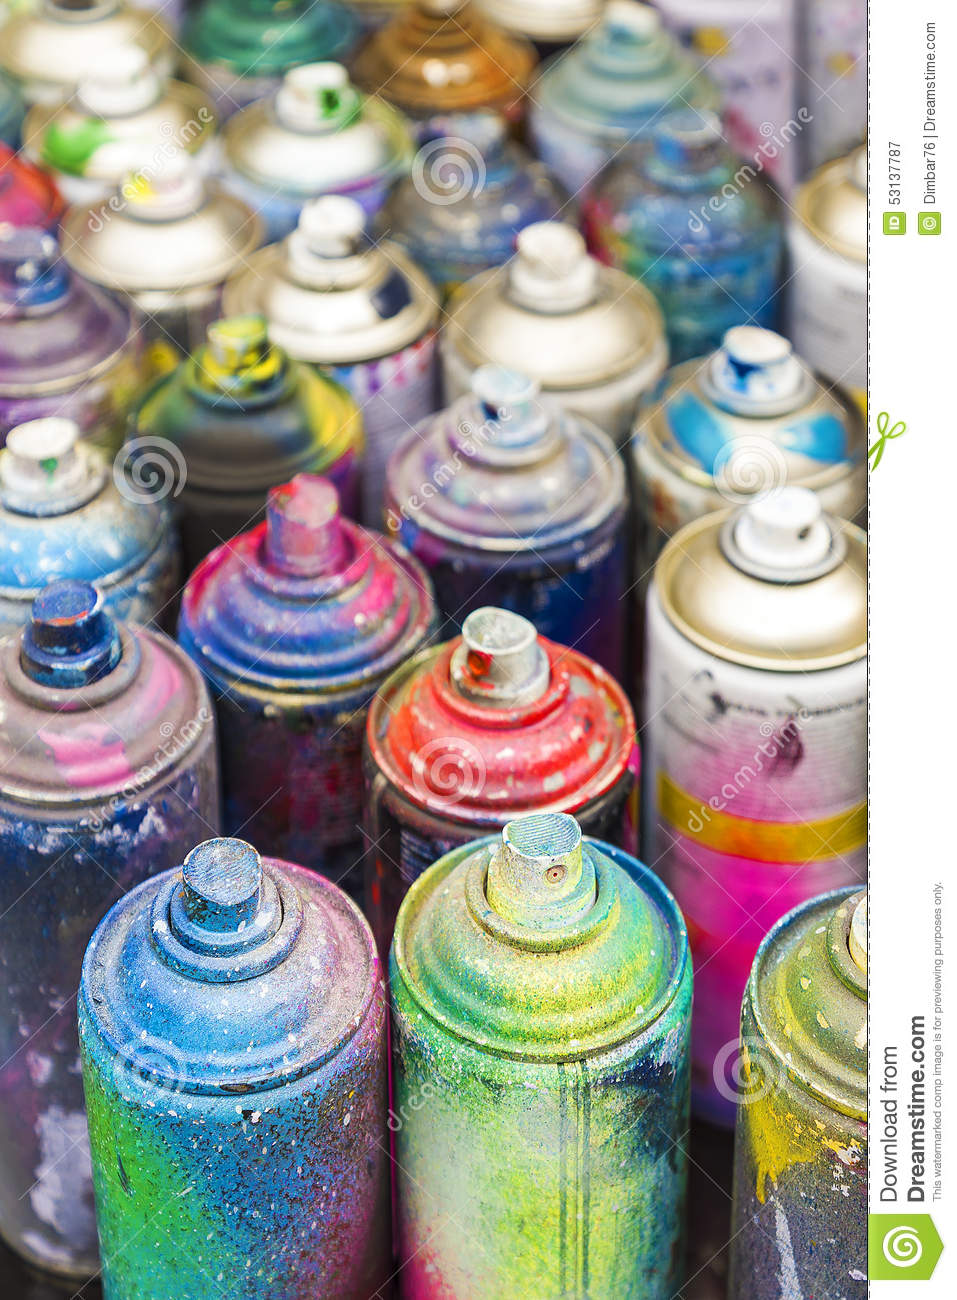 Used cans of spray paint stock image image of image 53137787 Paint with spray can